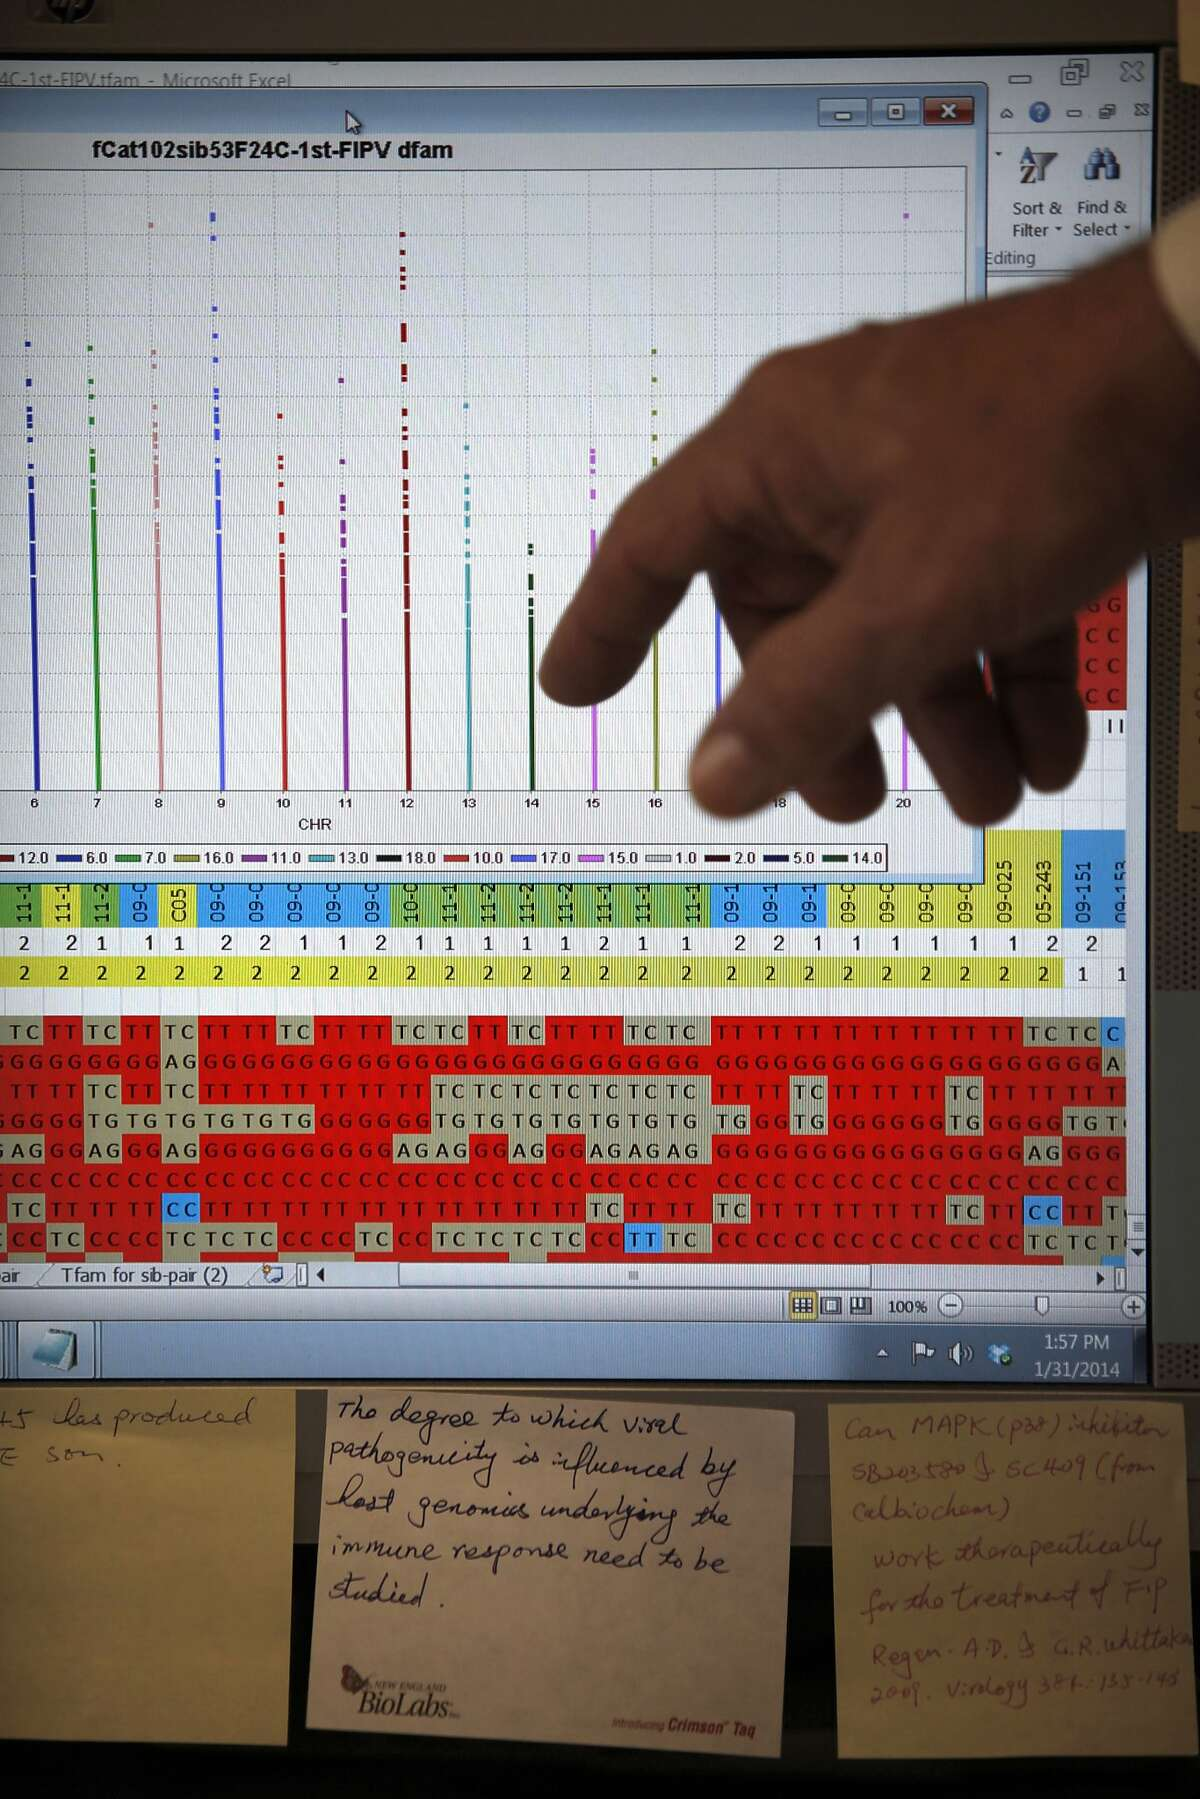 Dr Niels Pedersen shows his study of a hundred cats identifying the genetic association to disease resistance on a computer at his lab on the UC Davis campus in Davis, Calif., on Friday, January 31, 2014. He is presently doing a study on feline infectious peritonitis.